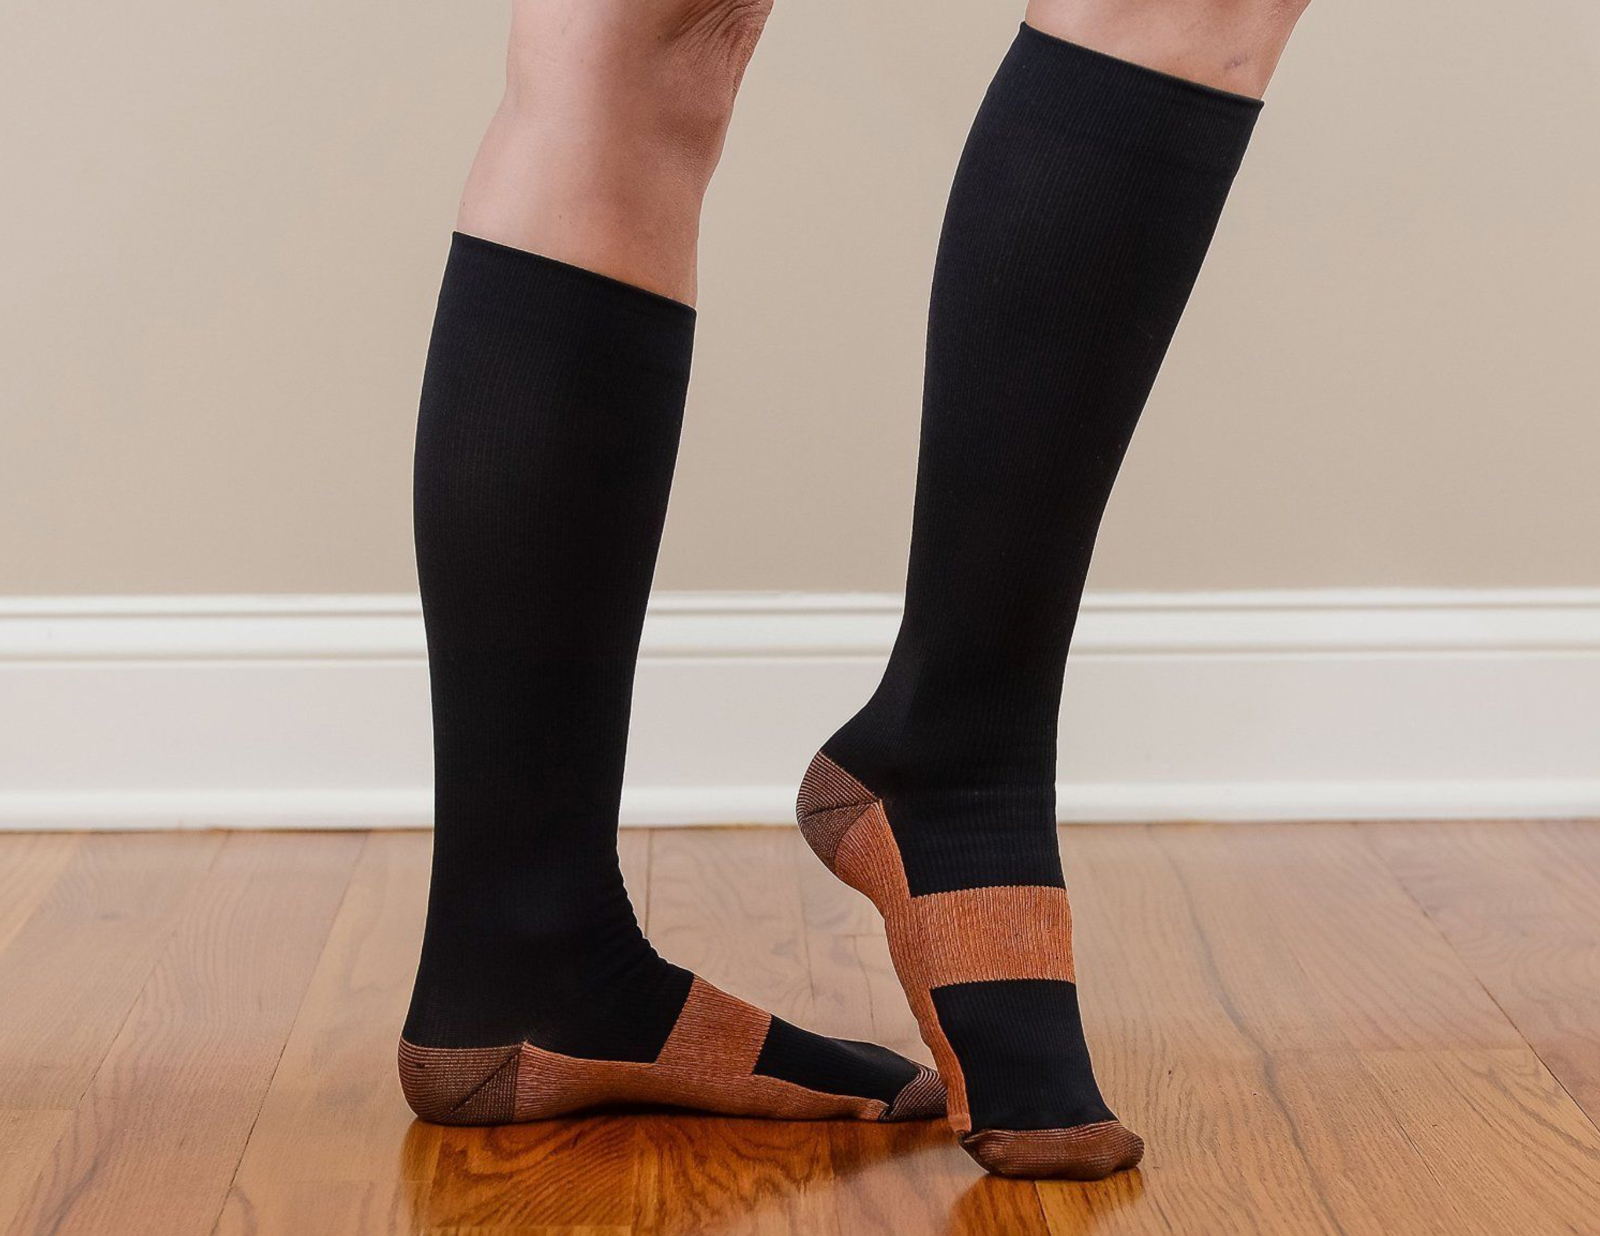 Copper Compression Stockings 20-30mmHg Support Socks Miracle Calf Men's Women's 3